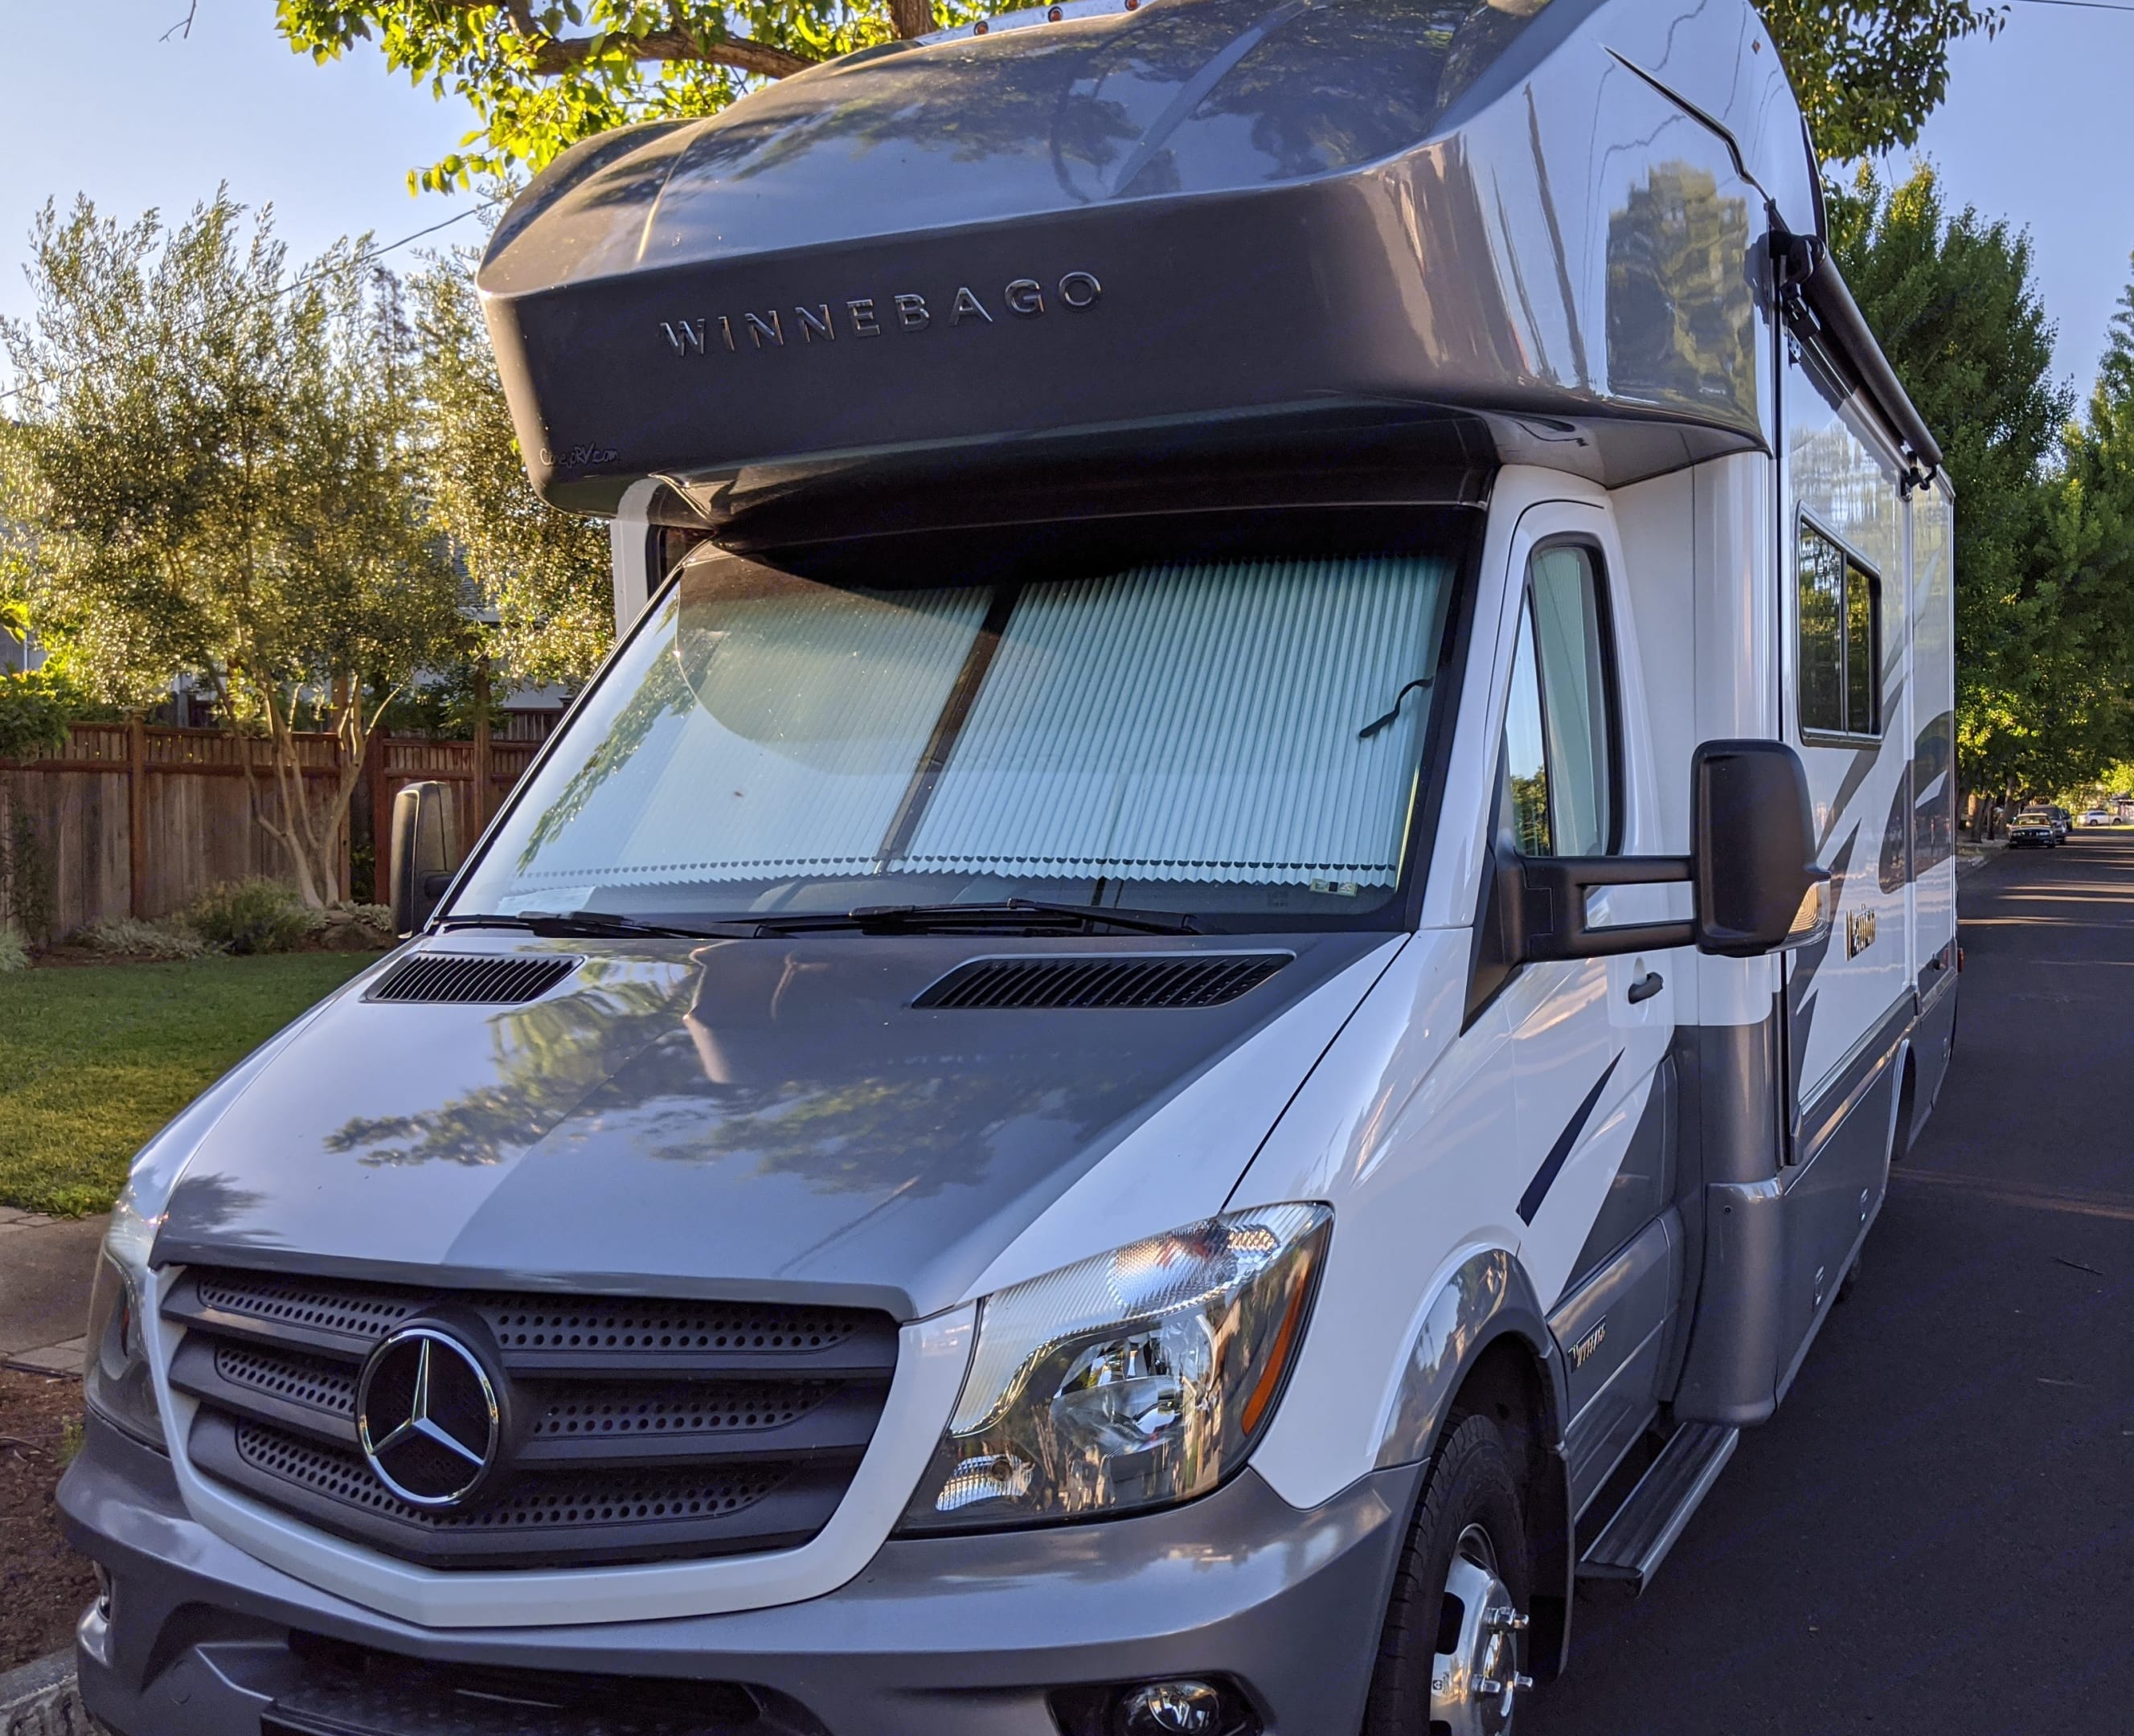 Great fuel mileage for an RV with the performance of a Mercedes engine and chassis. The deisel engine gets 15-17 mpg highway.. Winnebago Mercedes Navion 2019